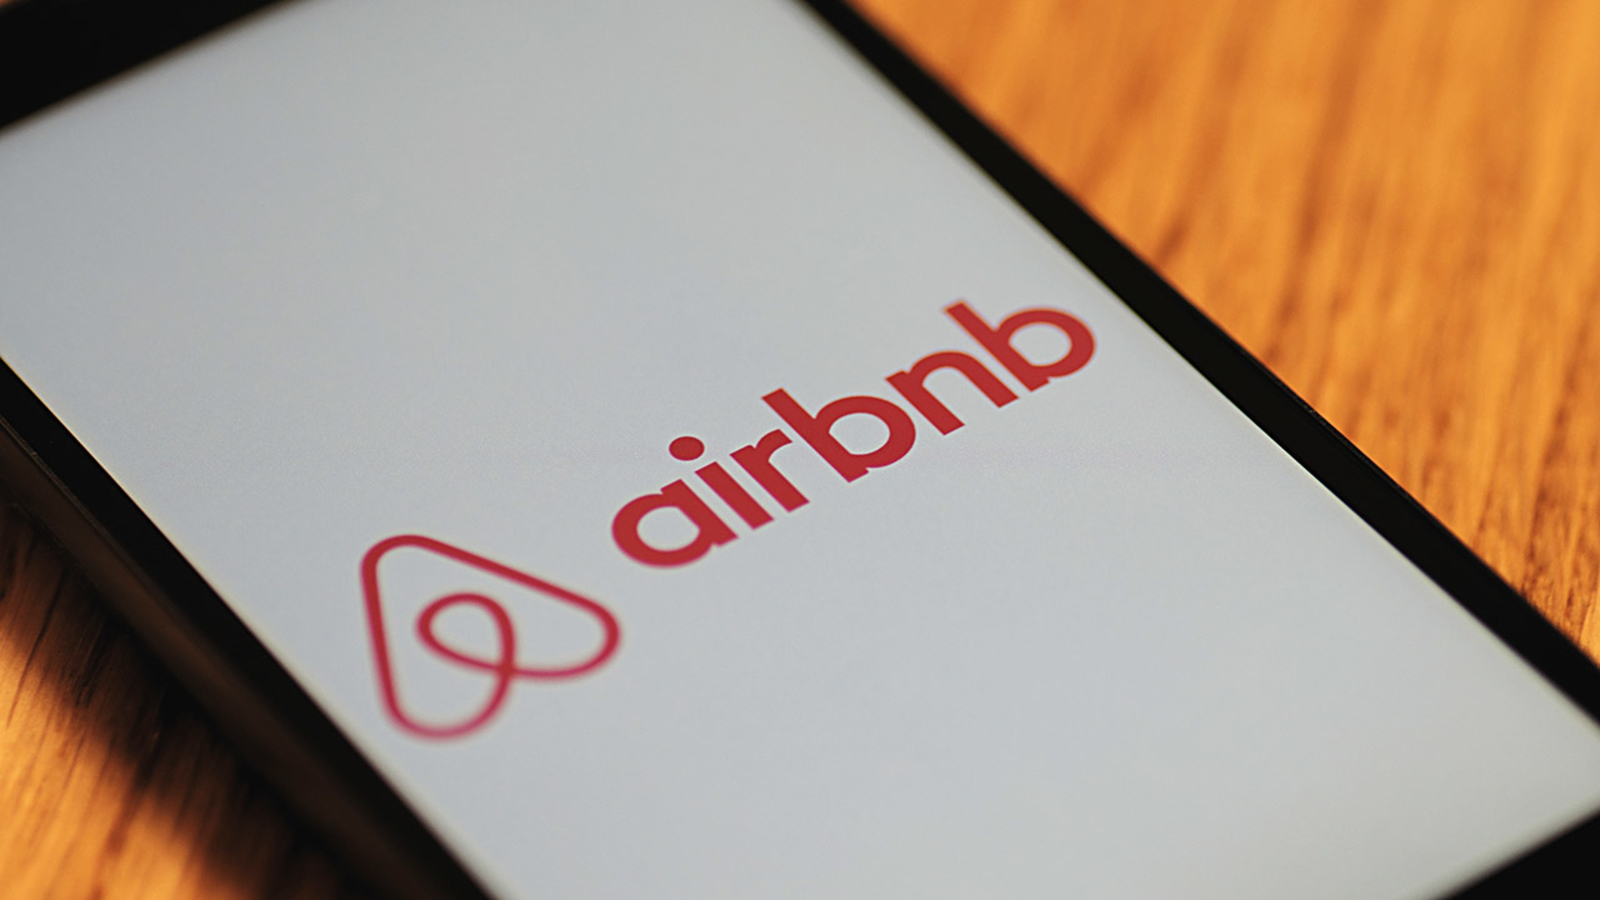 Man vacationing in Florida finds hidden cameras in his Airbnb | abc7news.com